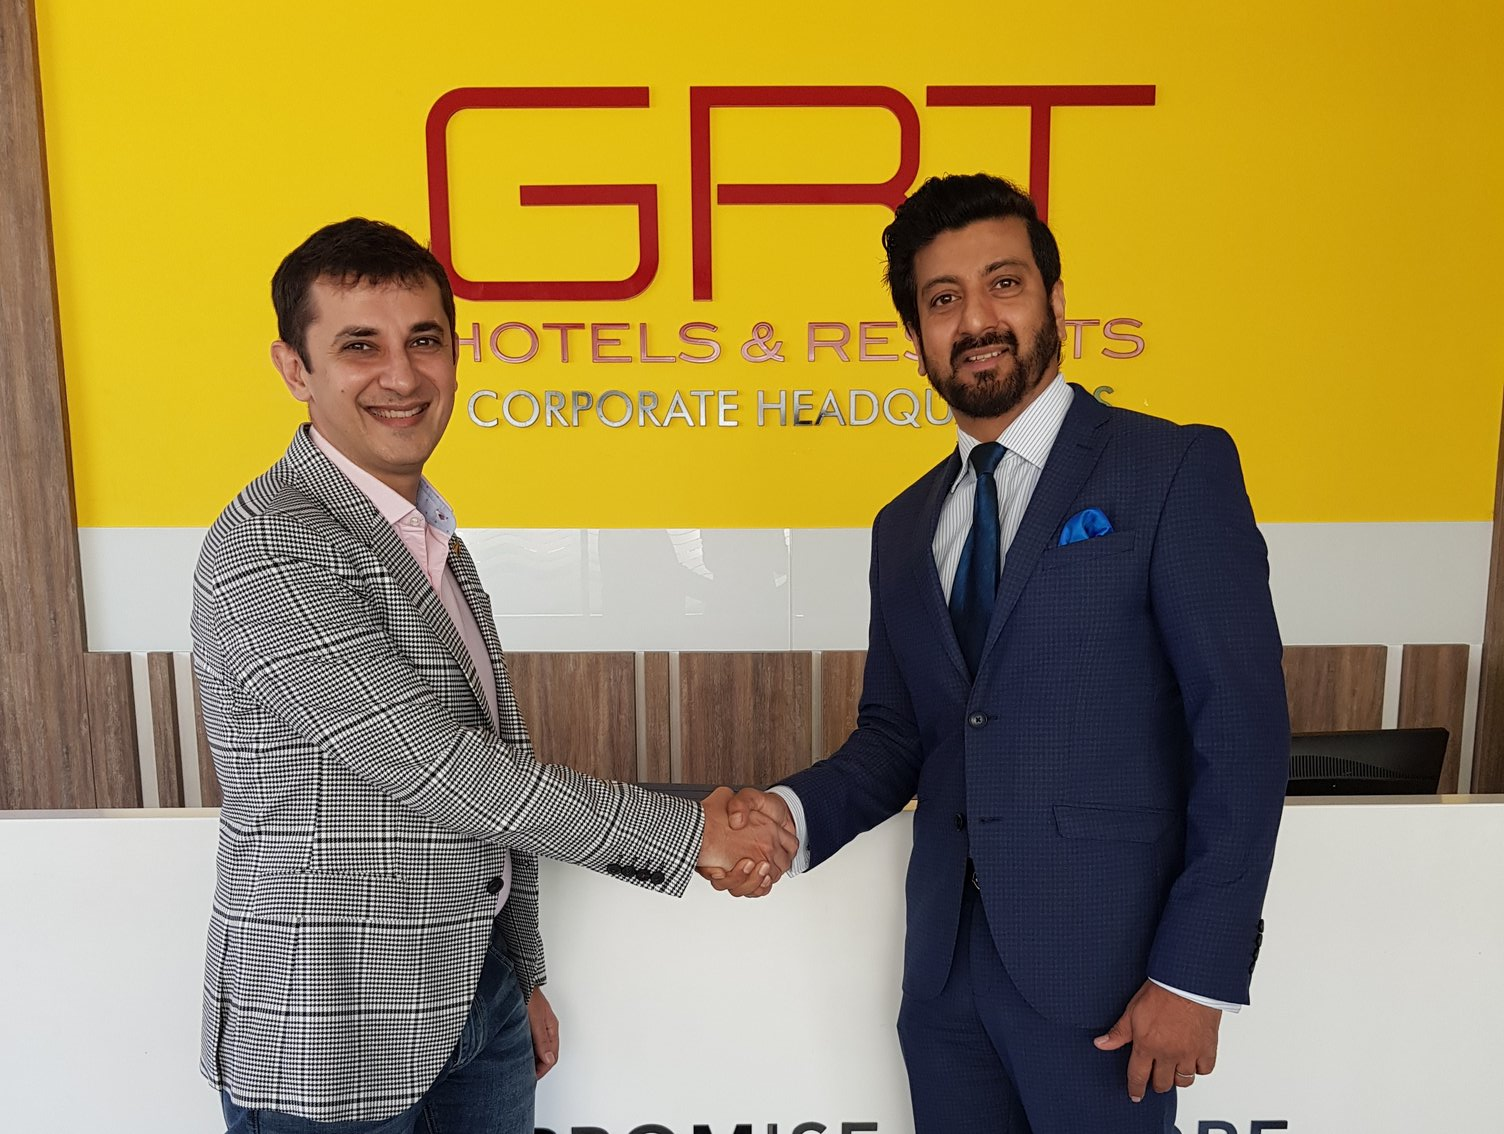 GRT Hotels & Resorts